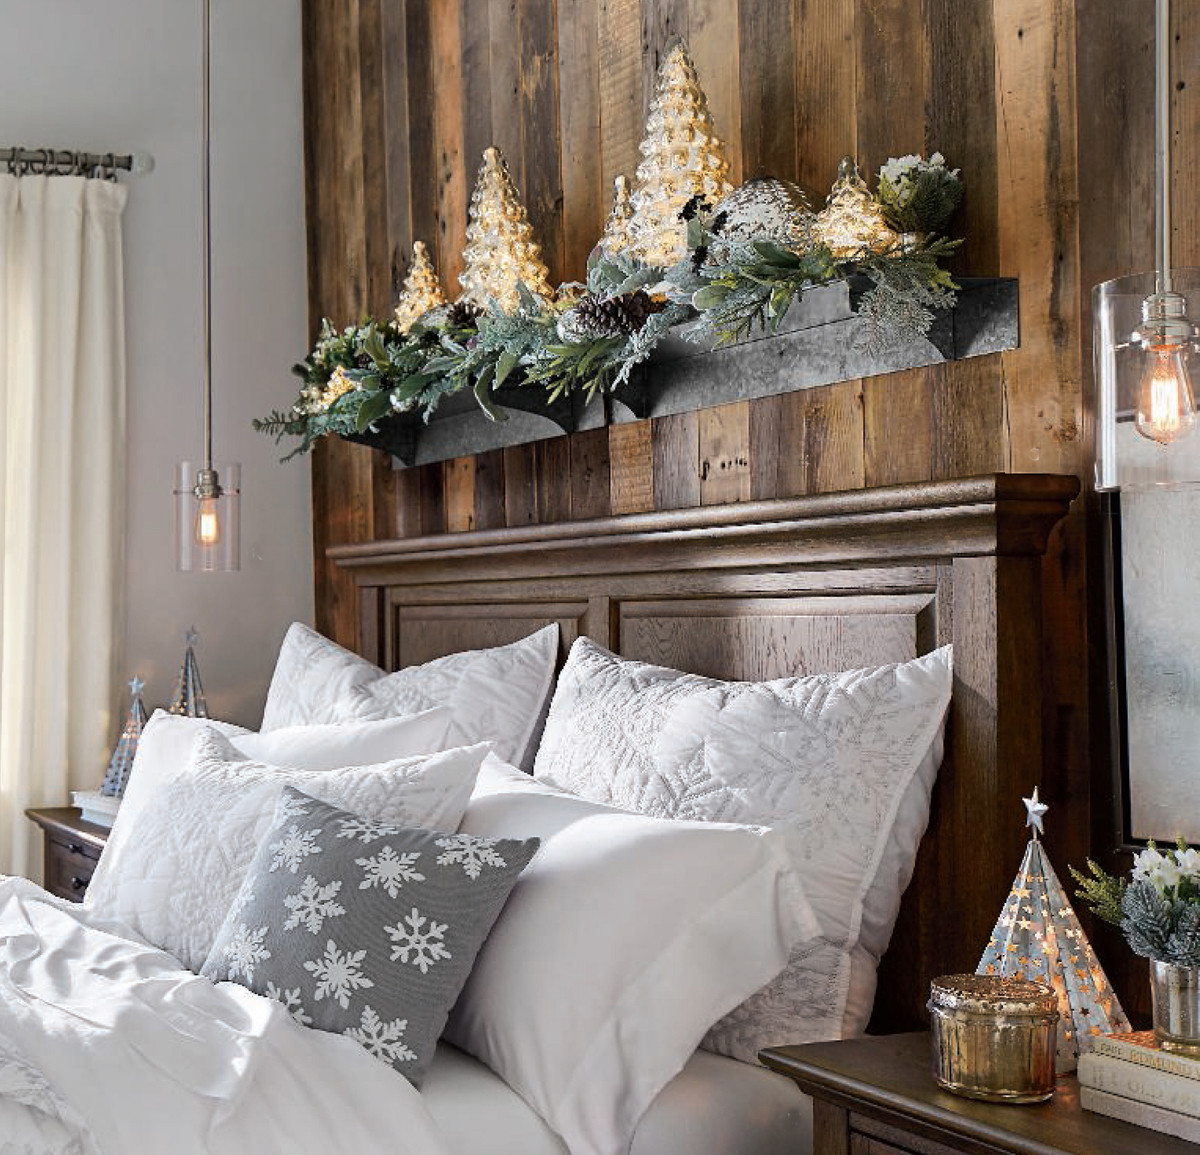 Christmas Bedroom Decorating Ideas  Rustic Christmas Decorating Ideas Country Christmas Decor